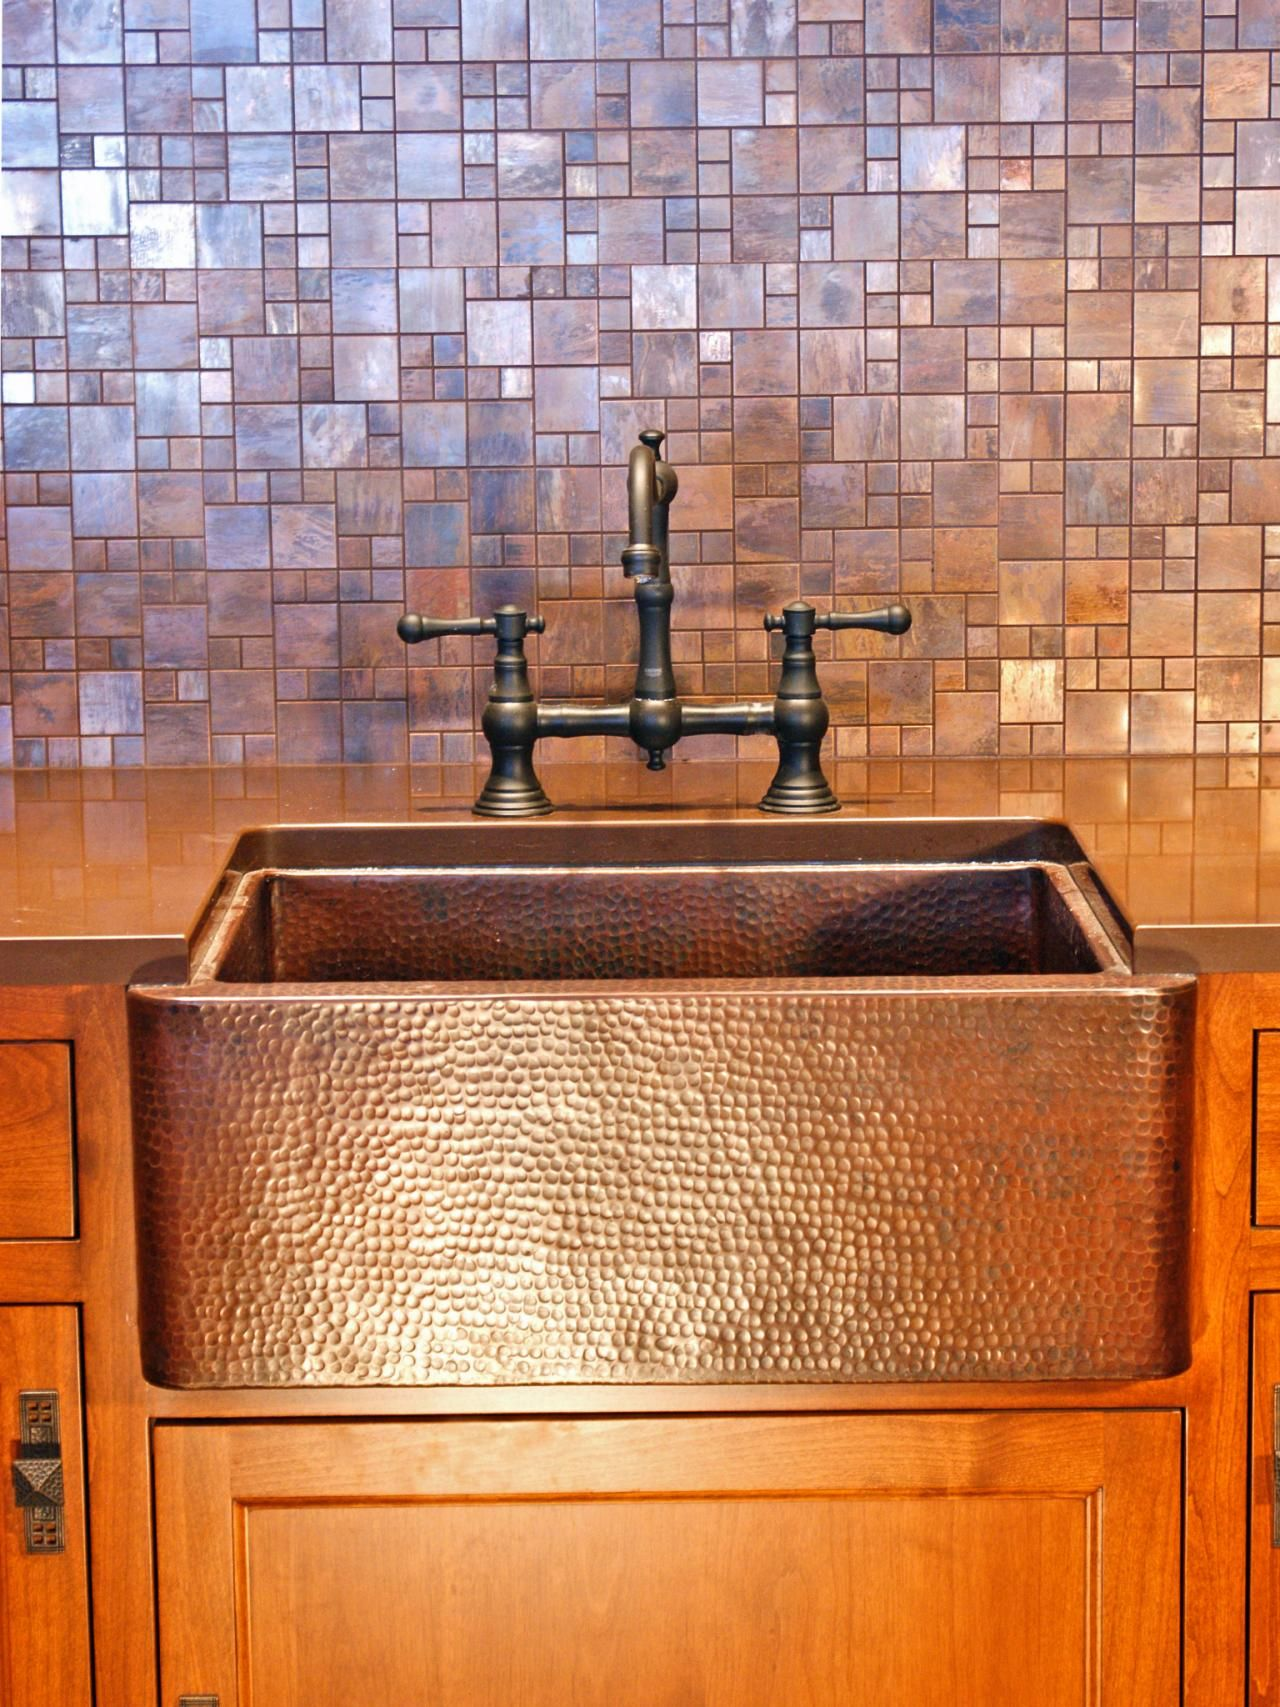 Ceramic Tile Backsplashes: Pictures, Ideas & Tips From - Ceramic Tile Backsplashes: Pictures, Ideas & Tips From Copper